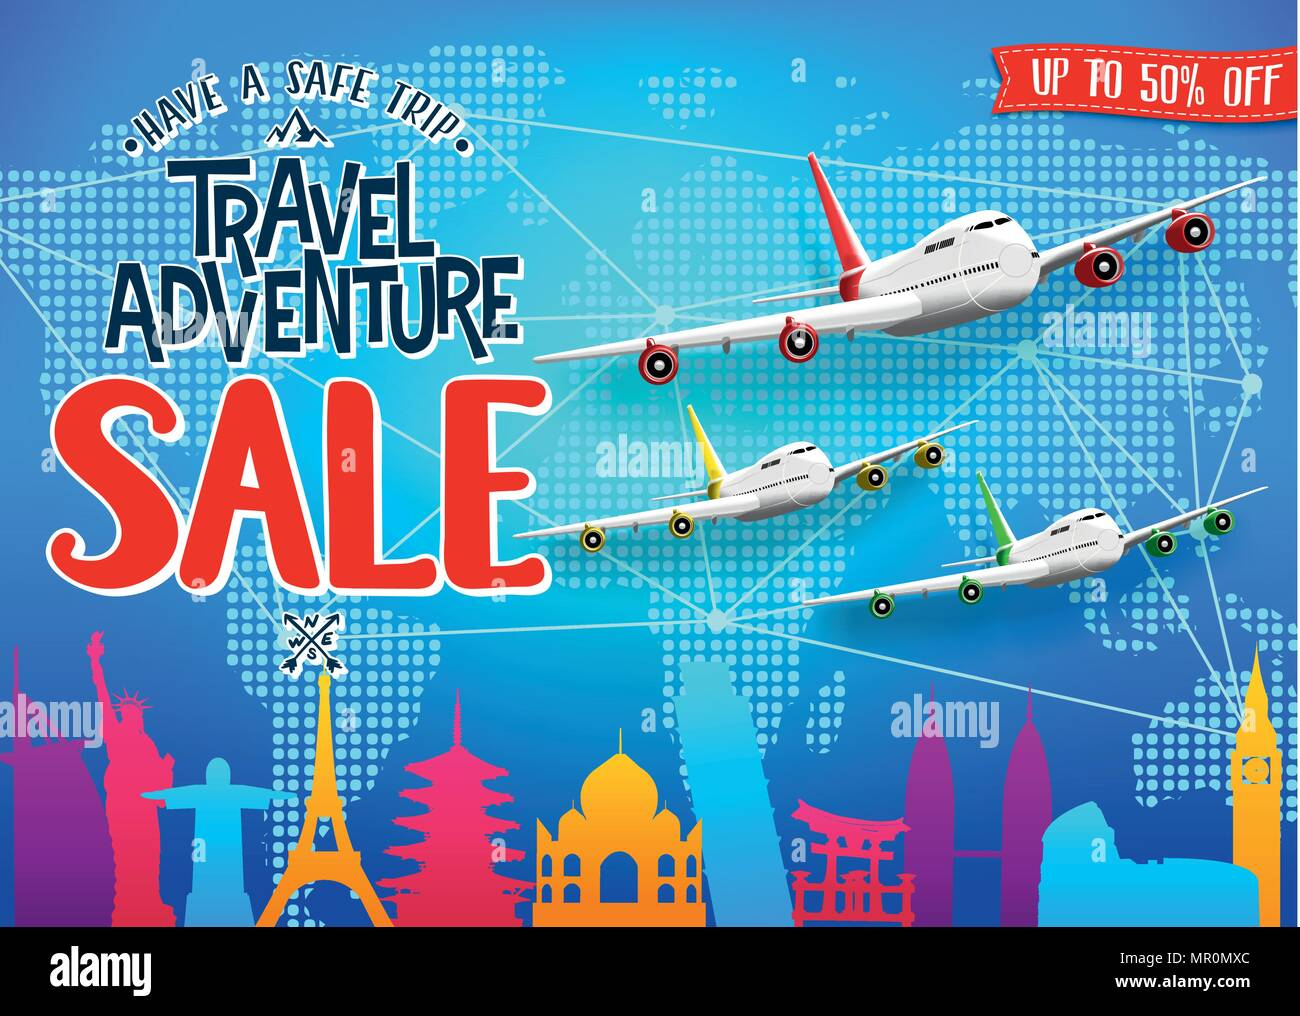 Creative Travel Adventure Sale Promotional Banner With Colorful World Famous Landmarks Silhouette And Airplanes For Advertisement Purposes Vector